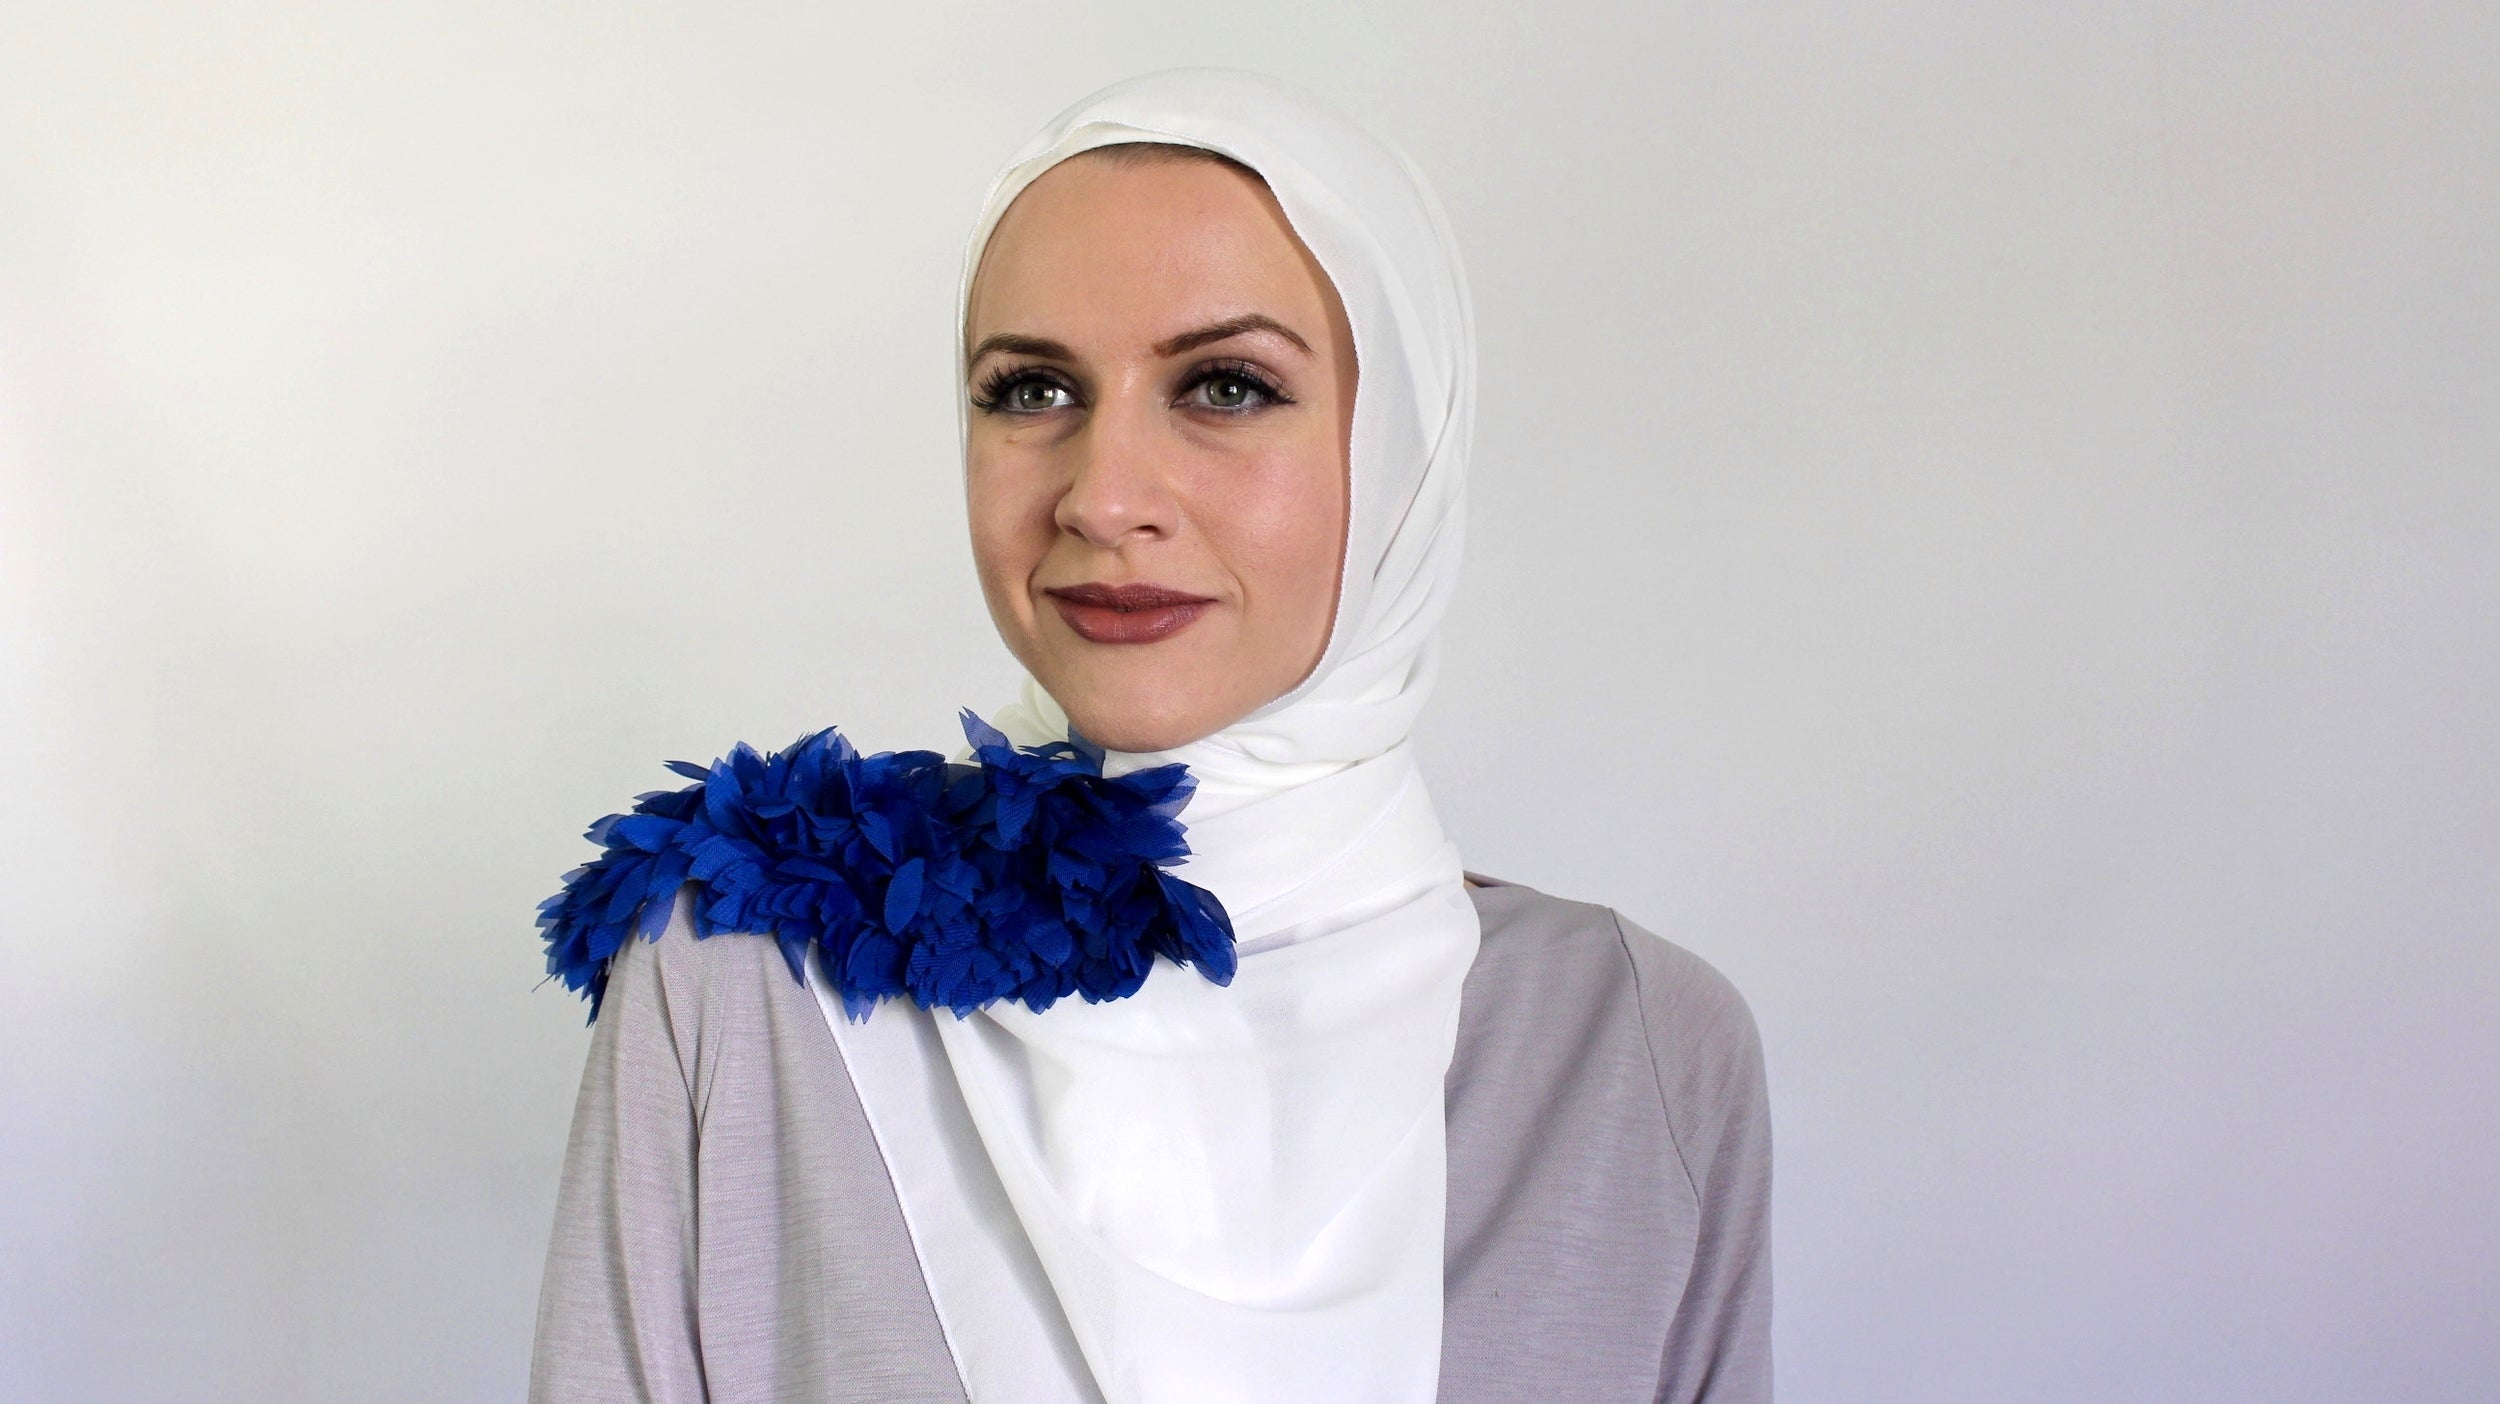 Introducing the PFH + Veilure Couture Hijab Collaboration!